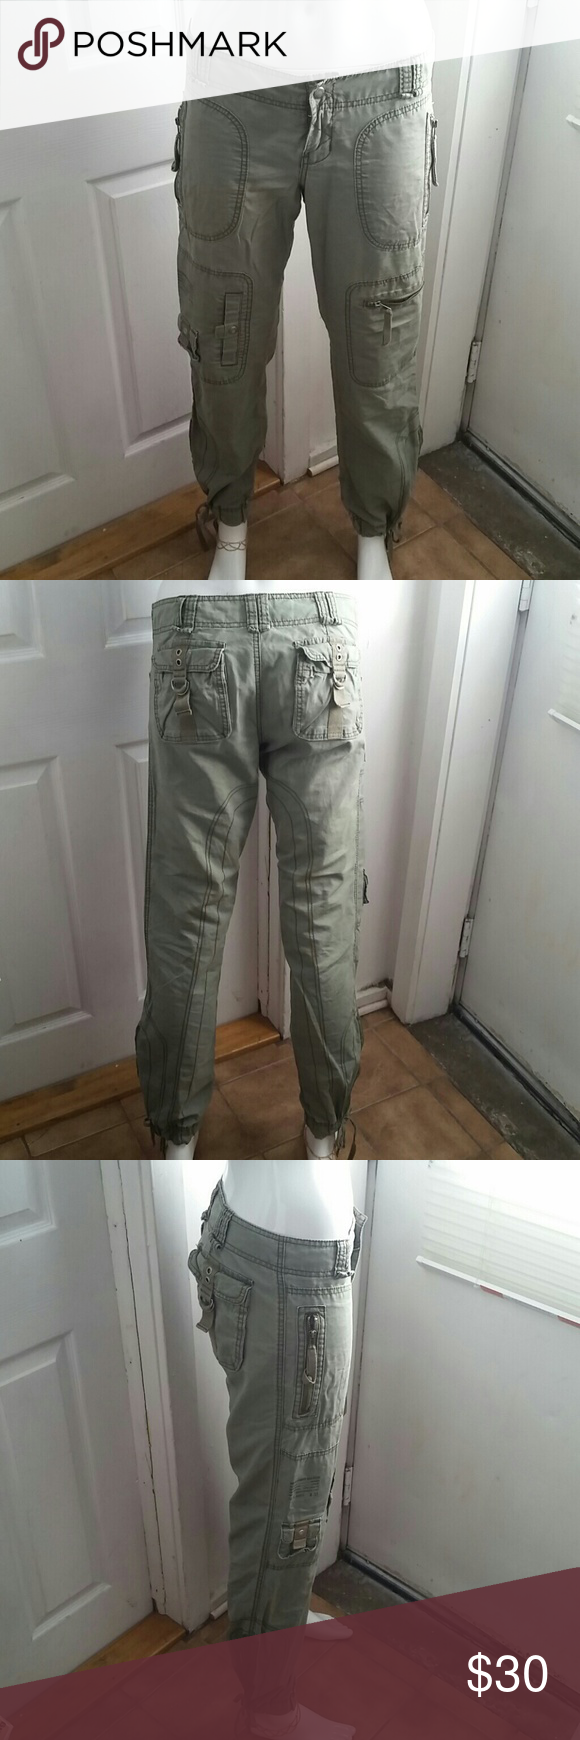 Abercrombie Cute, comfortable, lots of pockets, and in great condition. Has ties on the bottom and zippers on the sides. Abercrombie & Fitch Pants